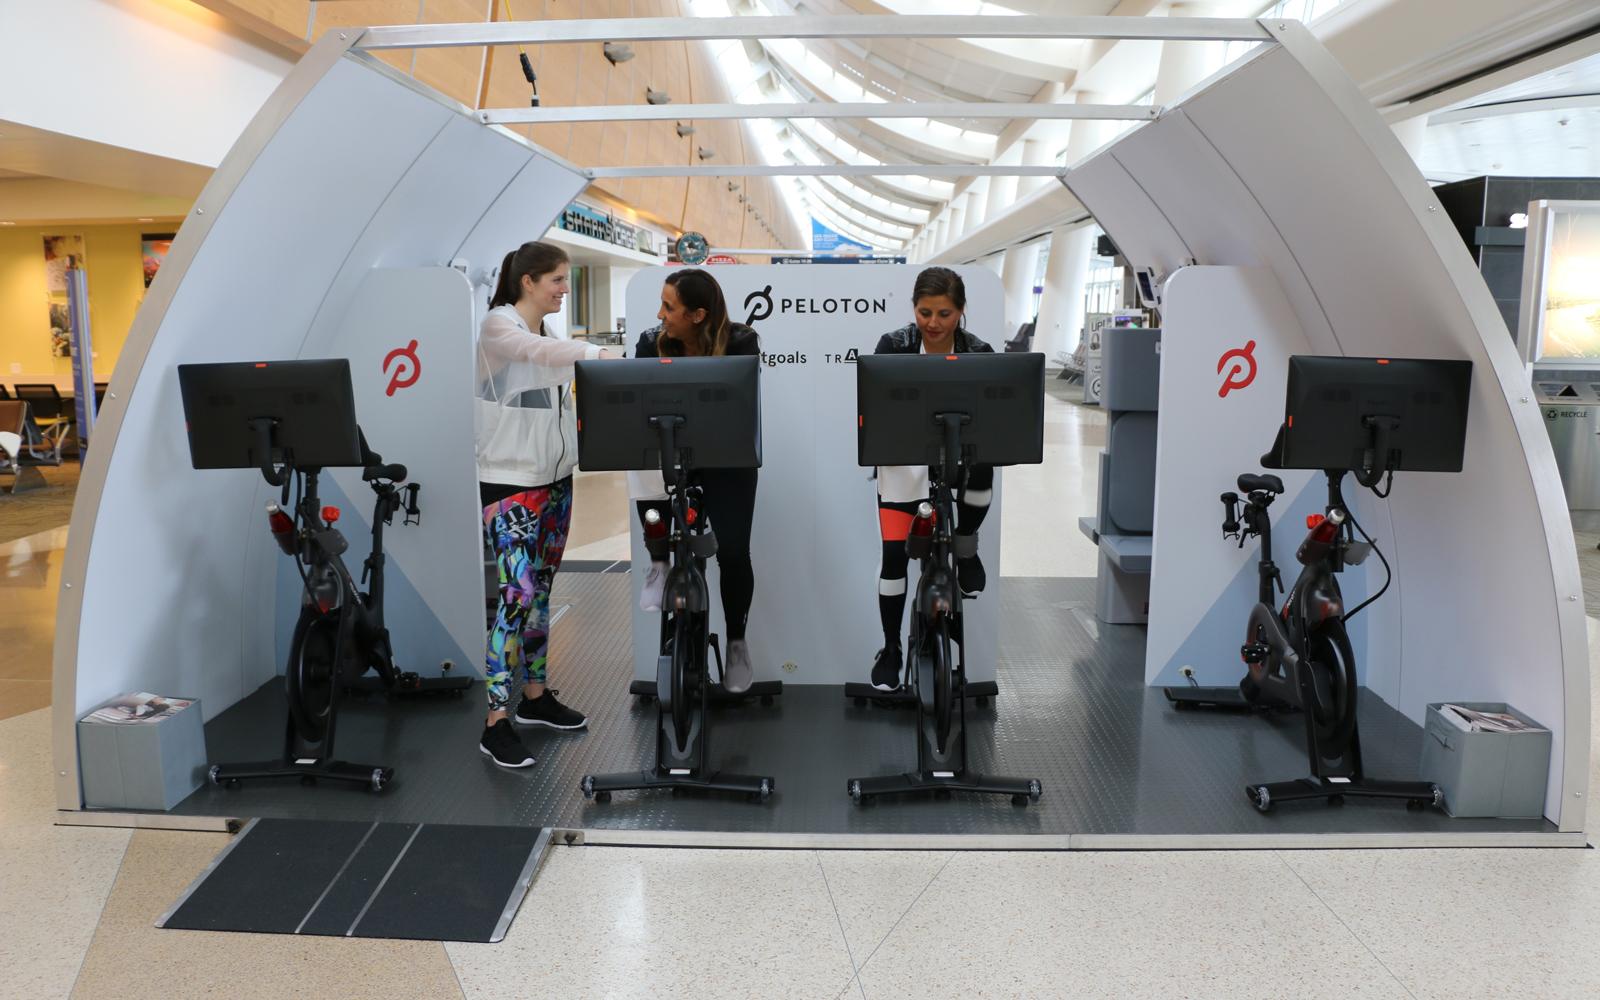 SoulCycle on a Plane? This Airbus Concept Would Have Us Spinning Through the Air